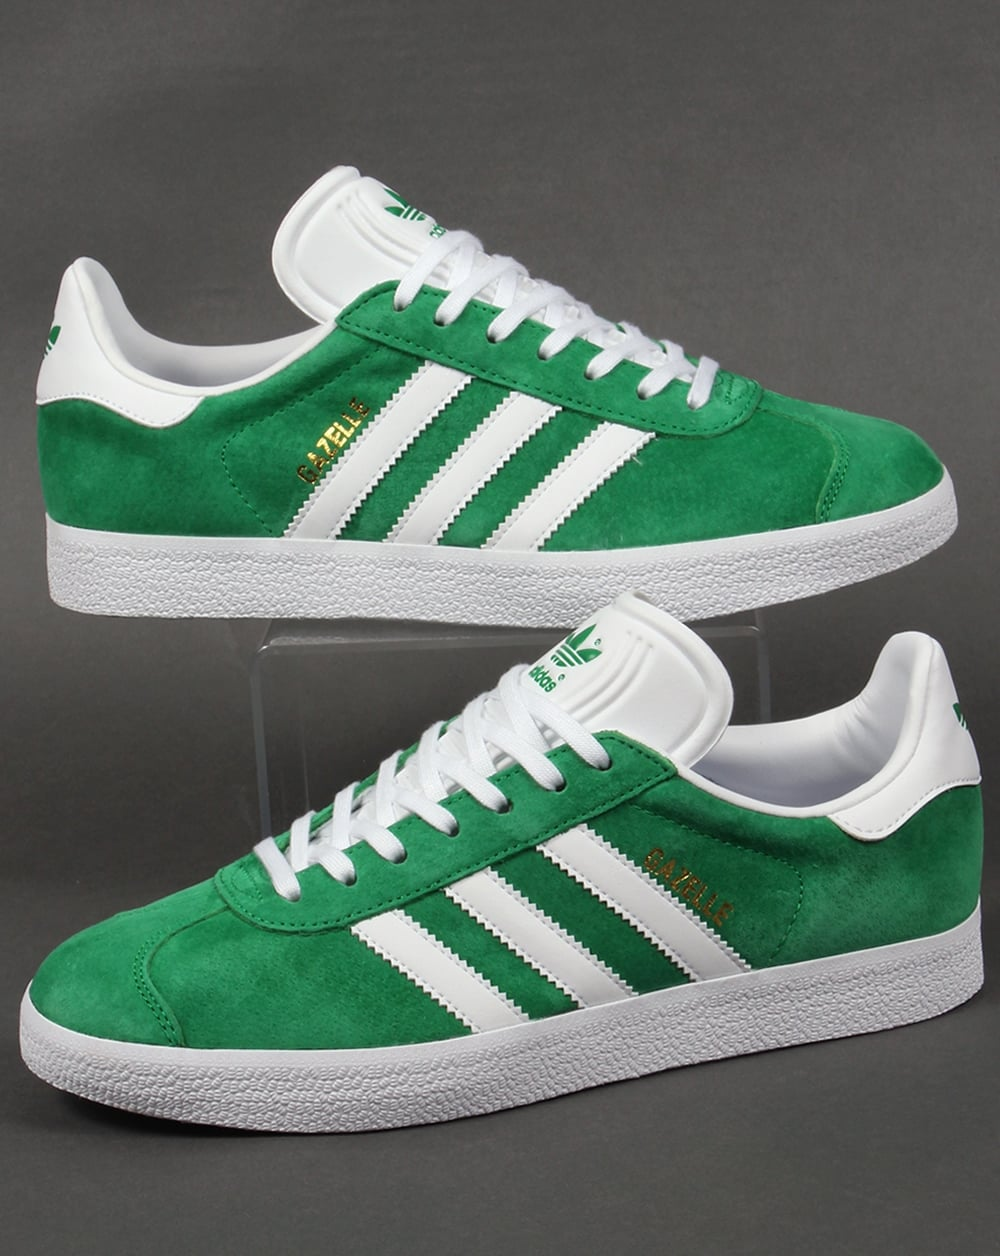 new concept 8ec71 3a04e adidas Trainers Adidas Gazelle Trainers Green White